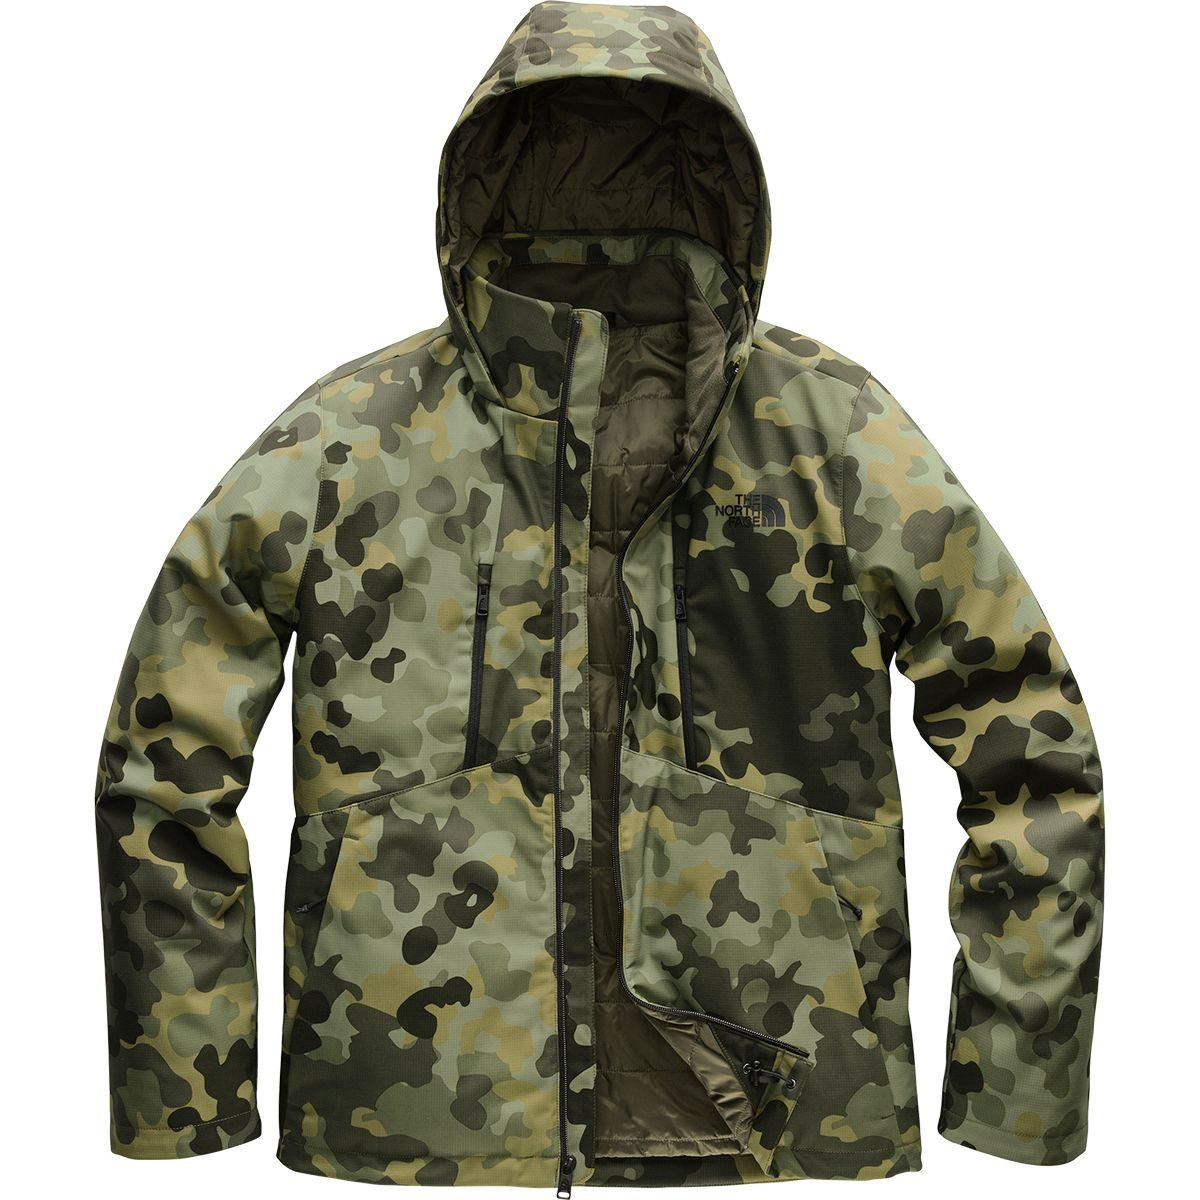 1e9661203a4 Lyst - The North Face Apex Elevation Hooded Softshell Jacket in ...